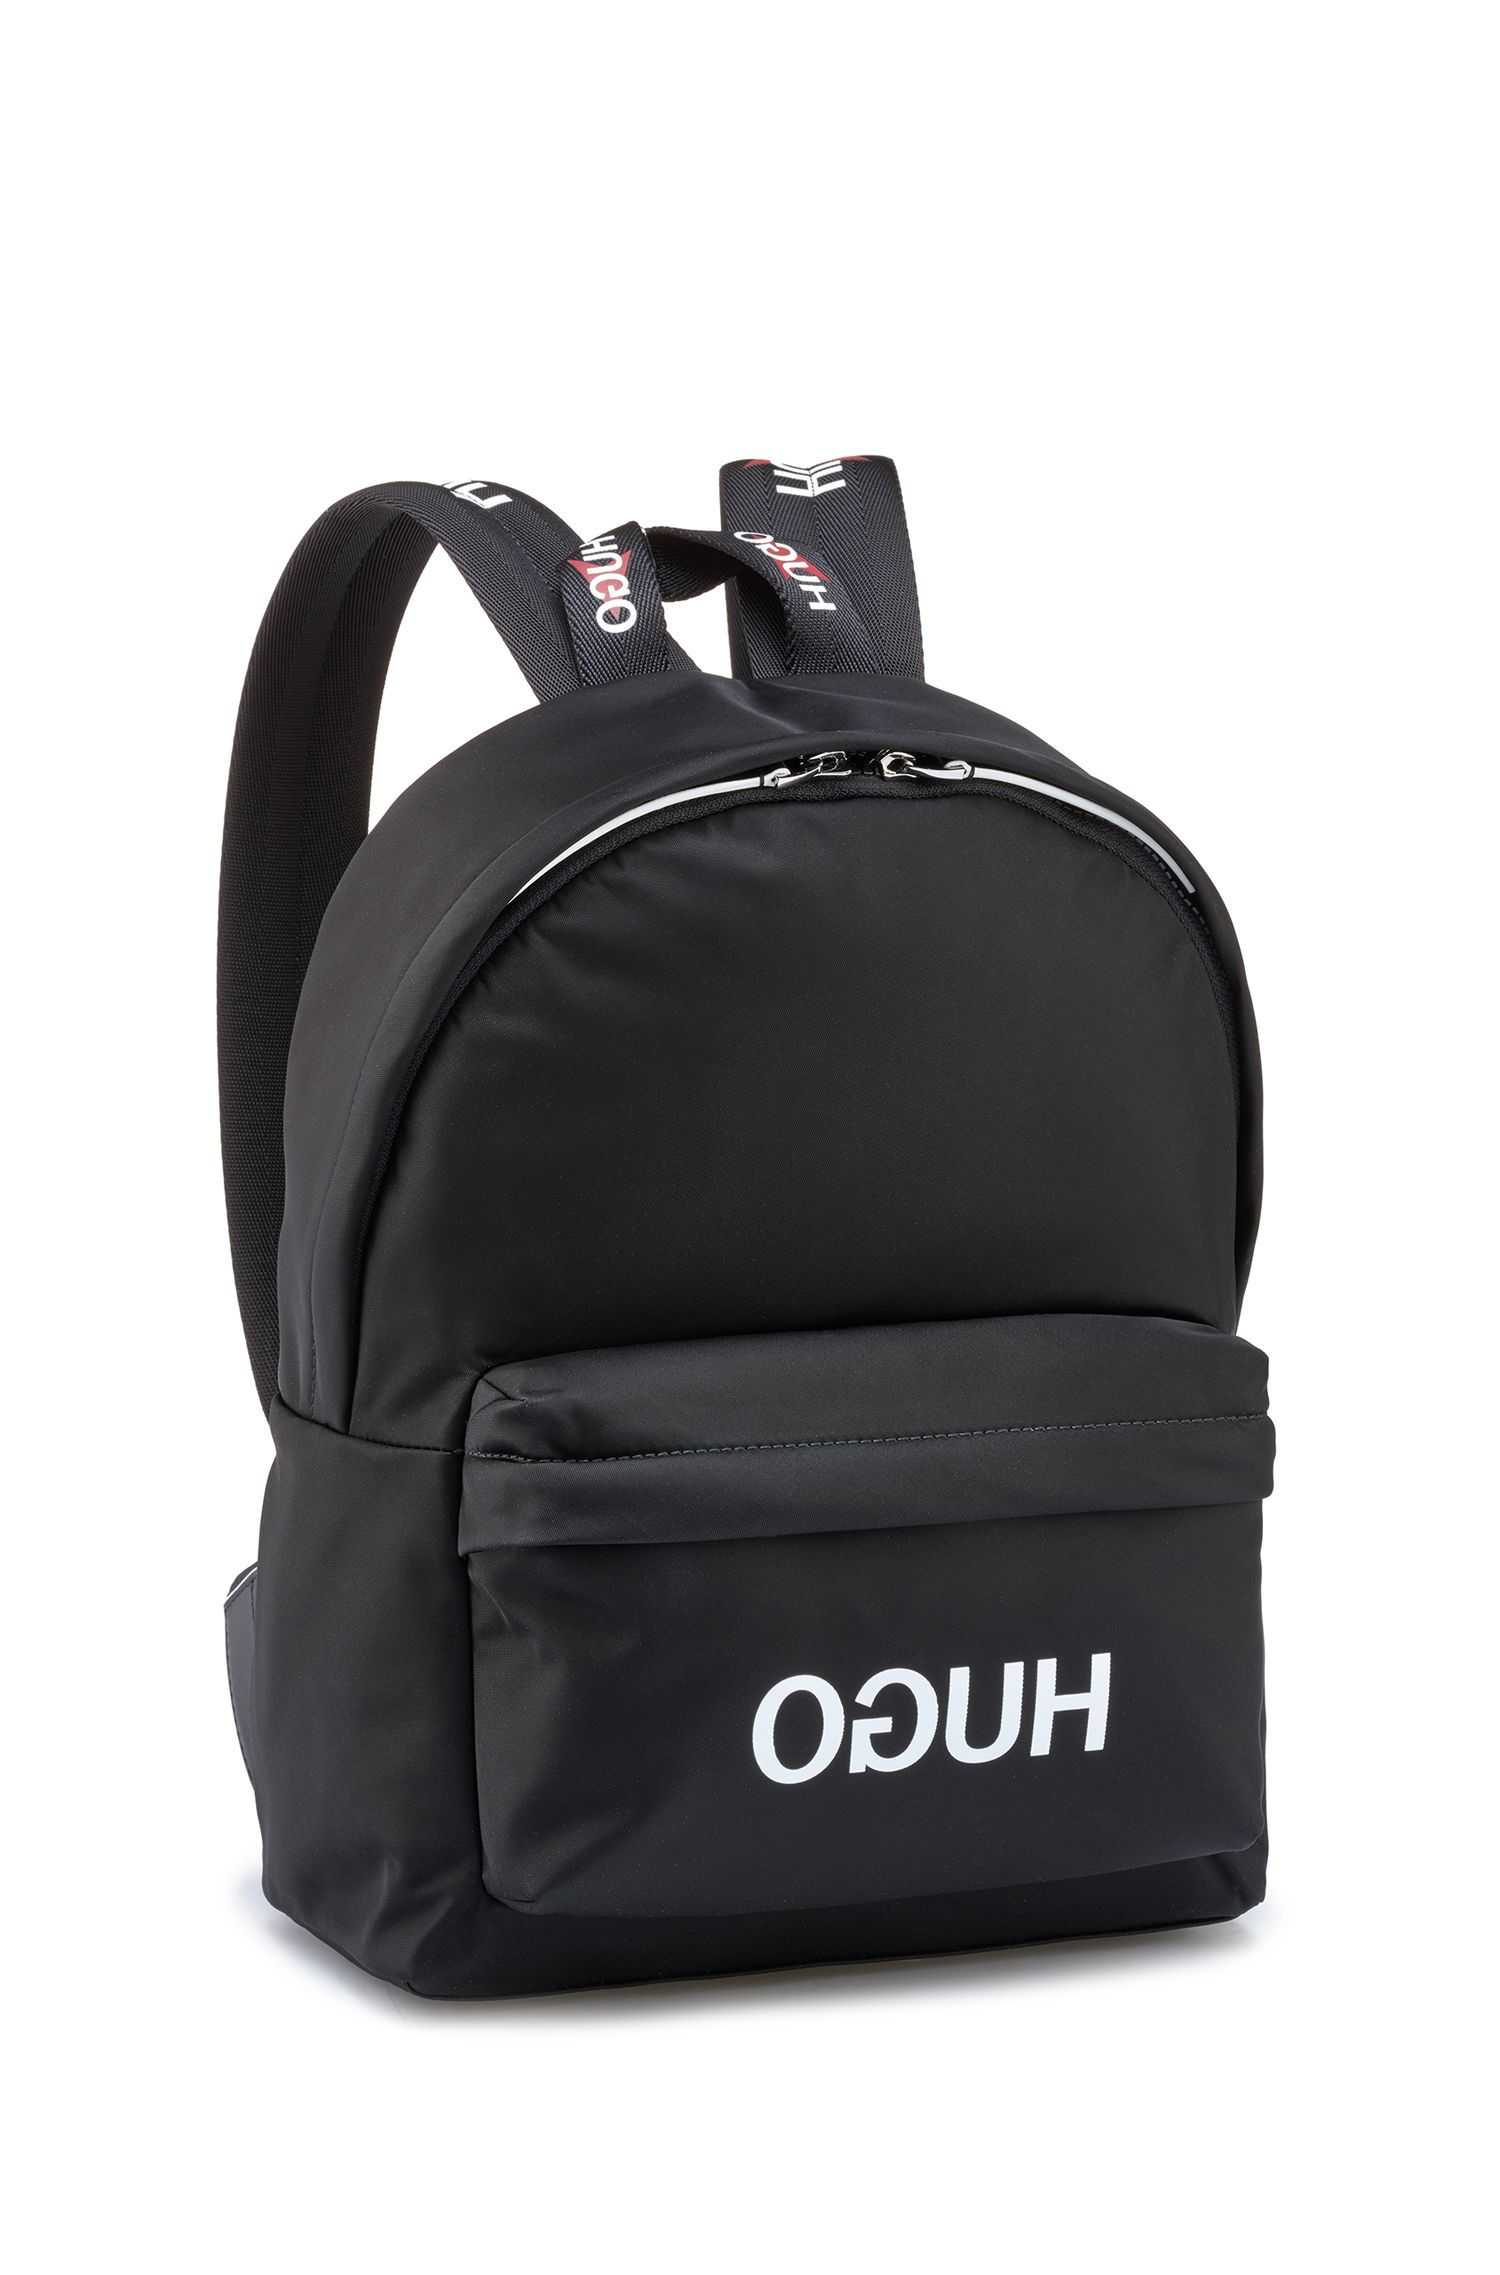 Reverse-logo backpack in nylon gabardine, Black